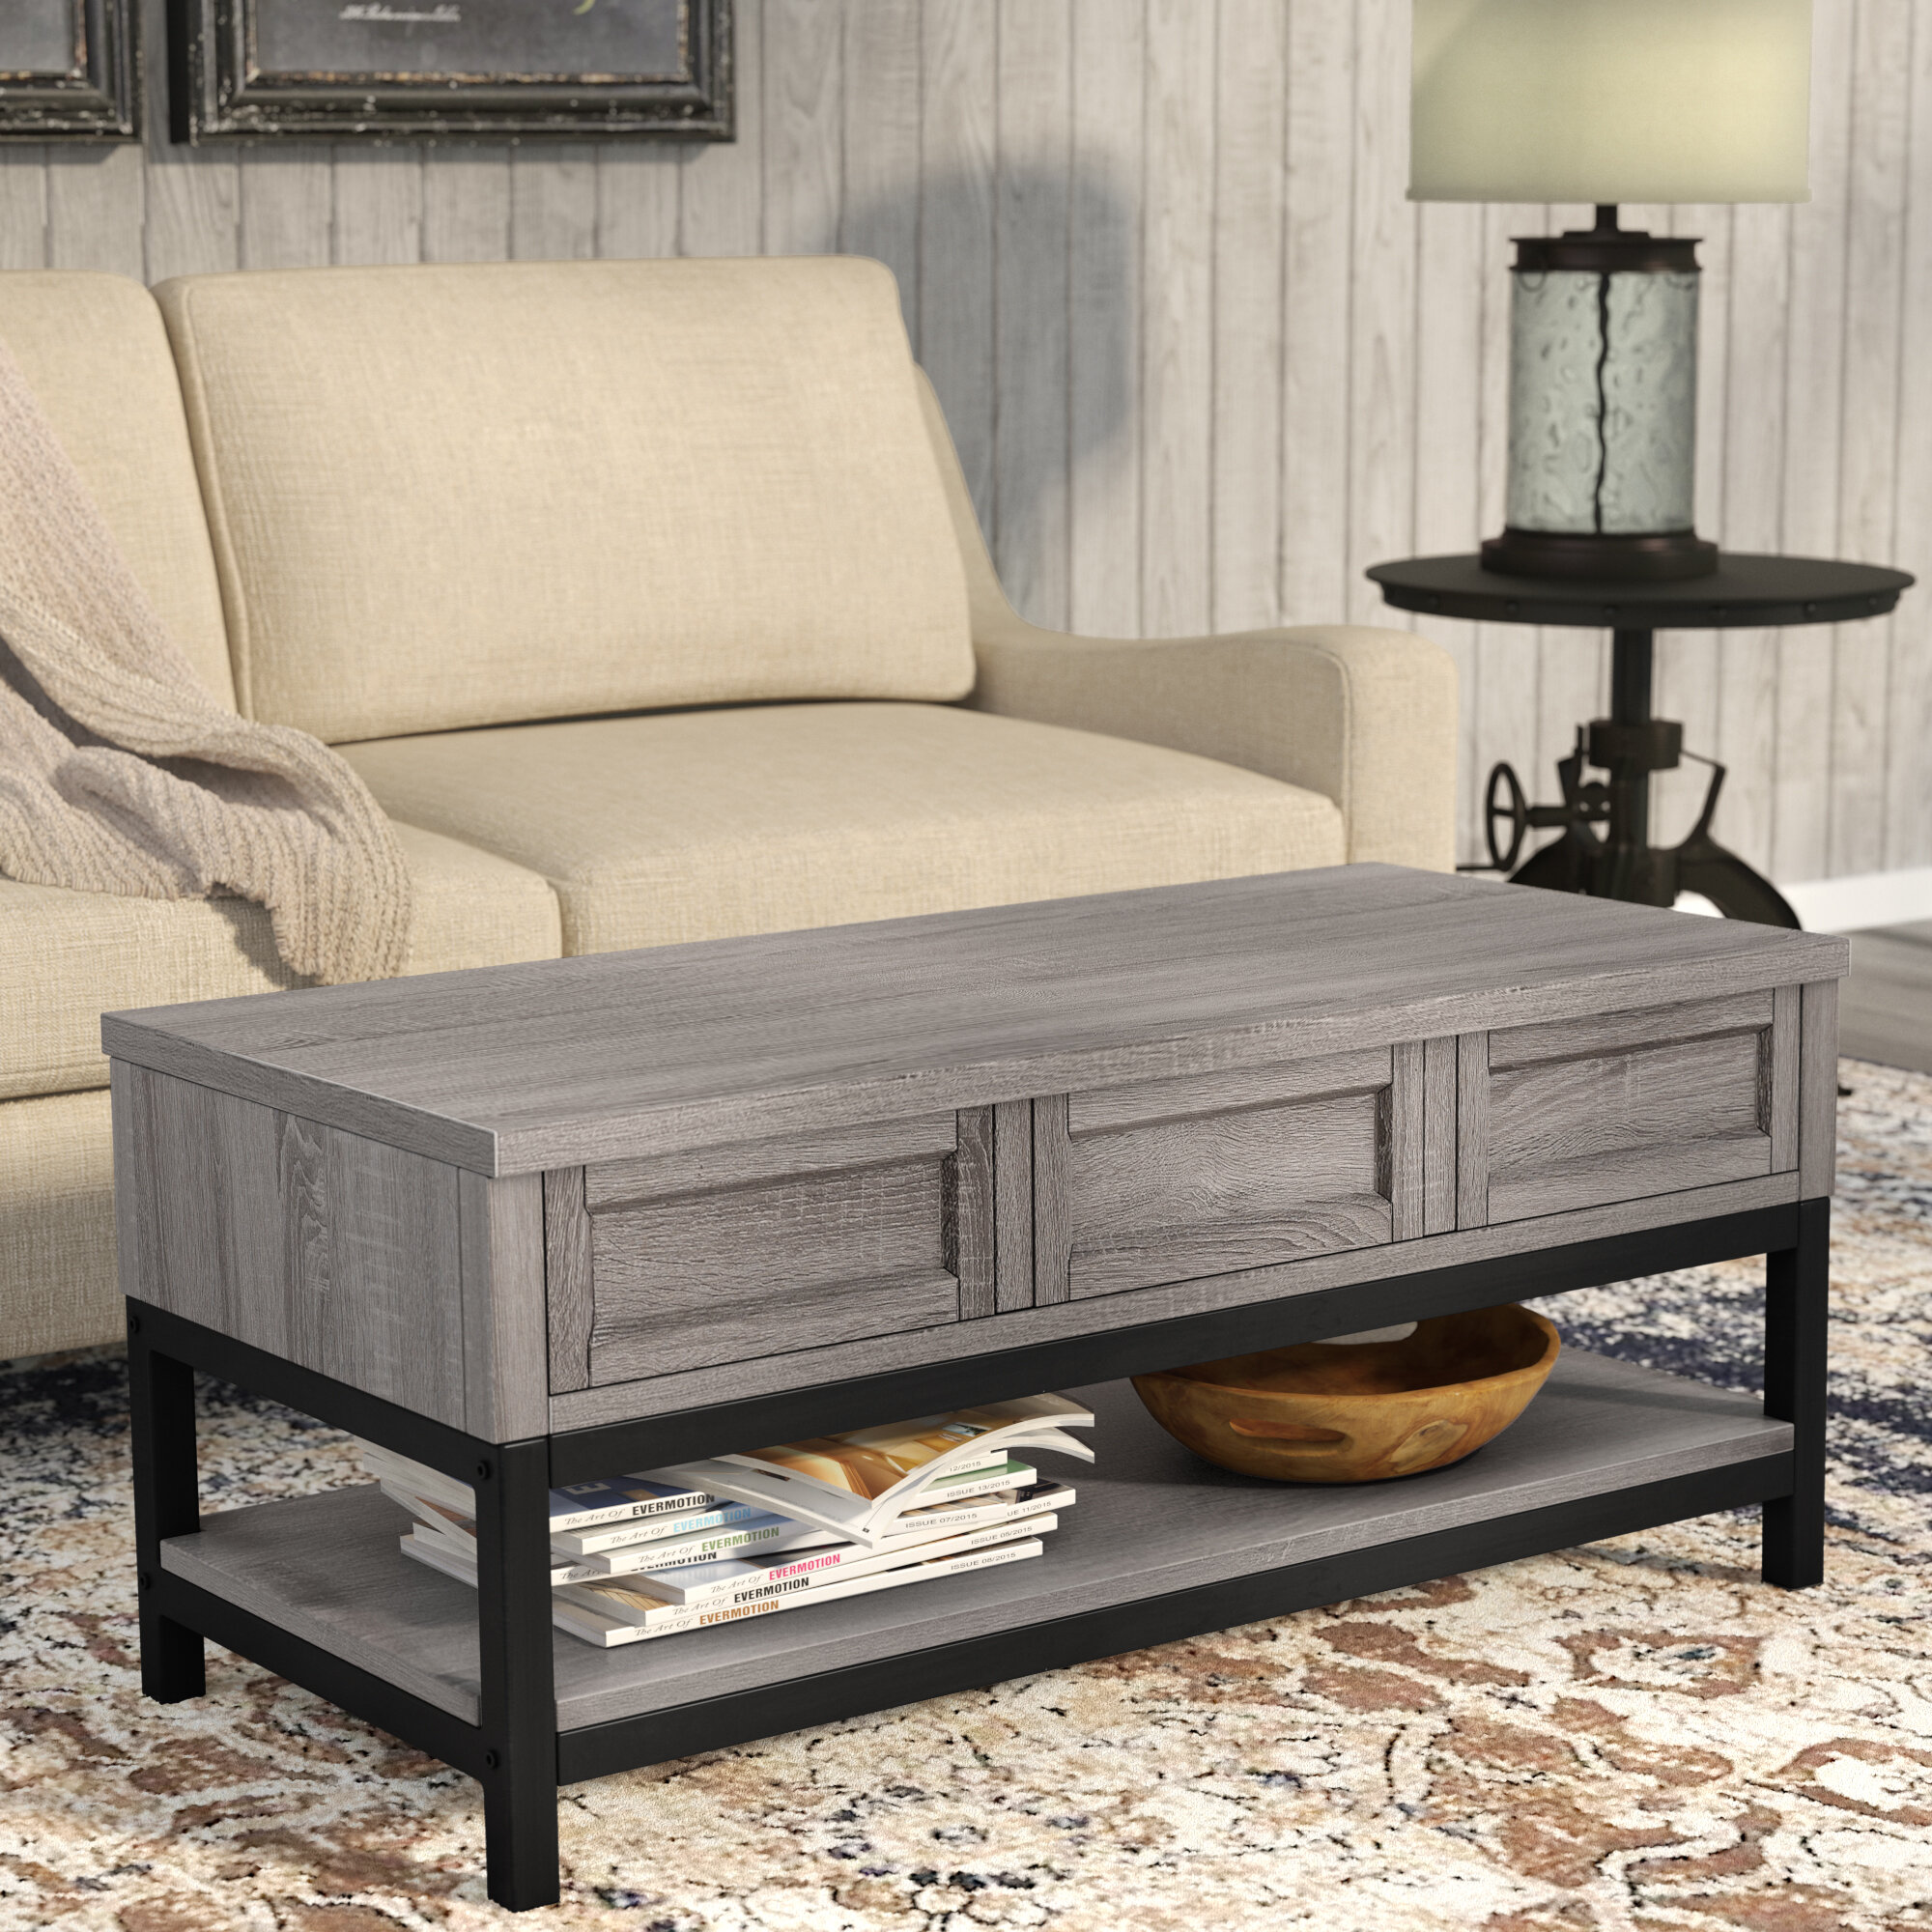 Laurel Foundry Modern Farmhouse Omar Lift Top Coffee Table Reviews Wayfair